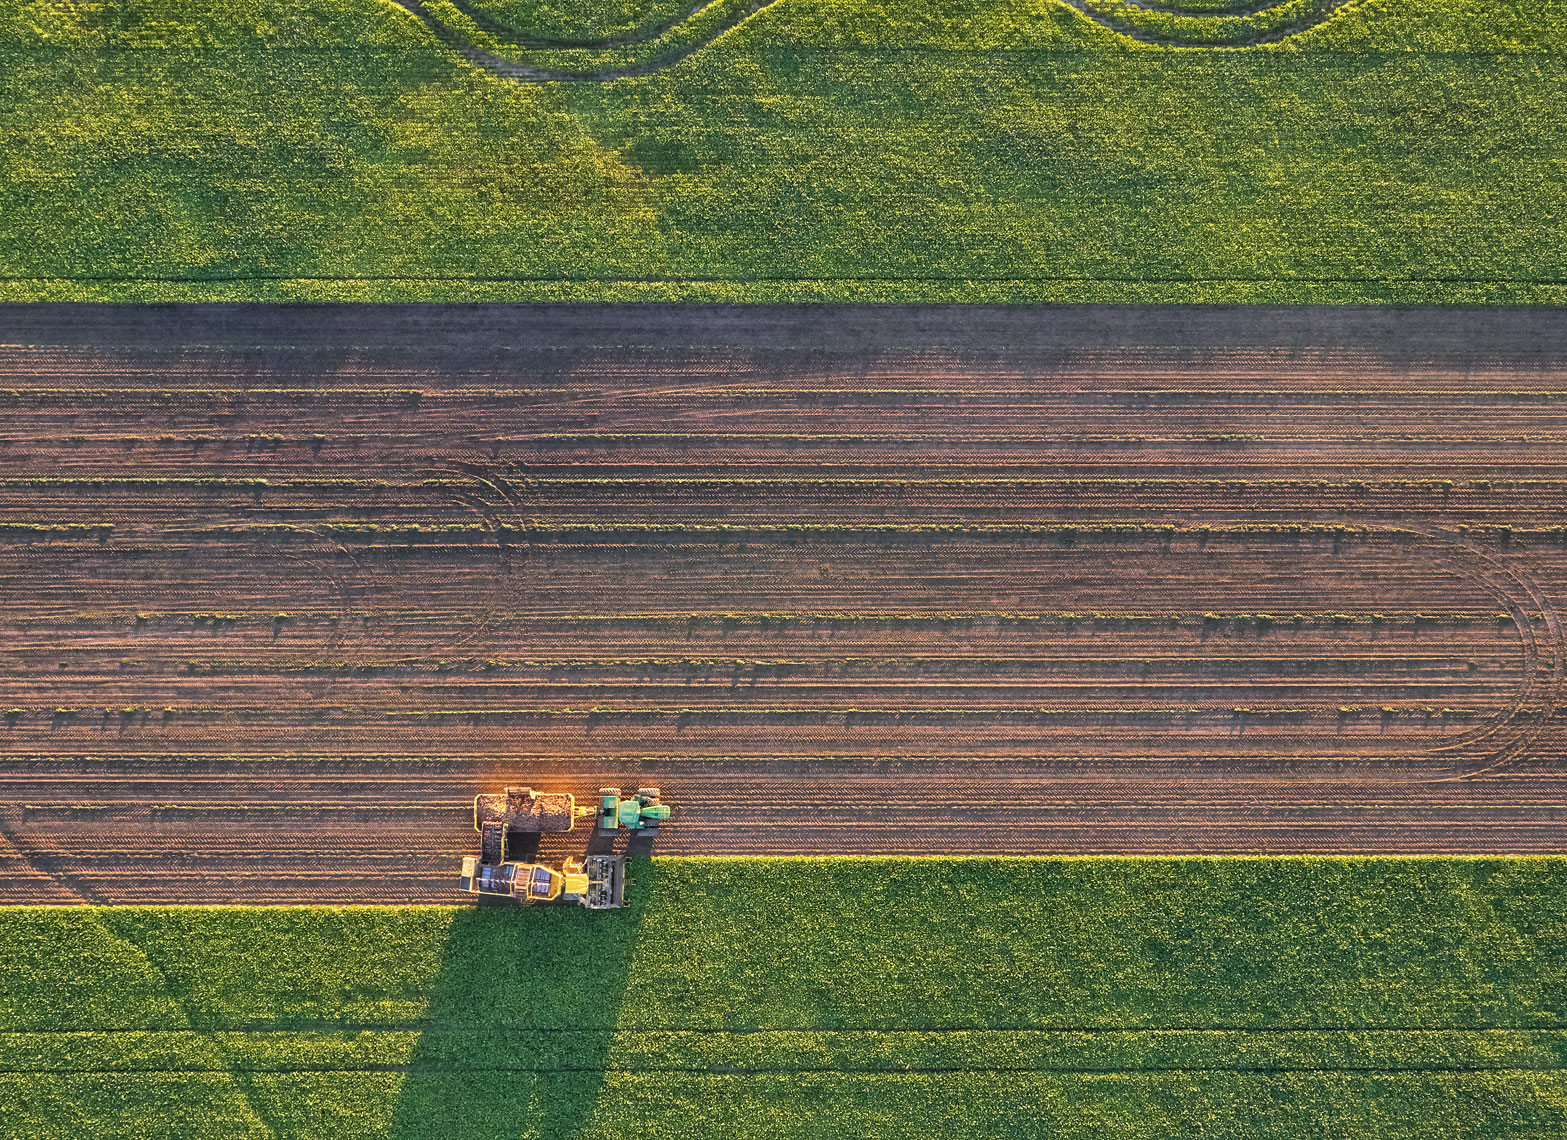 Sugar beet harvest/field empty middle/arial drone photography